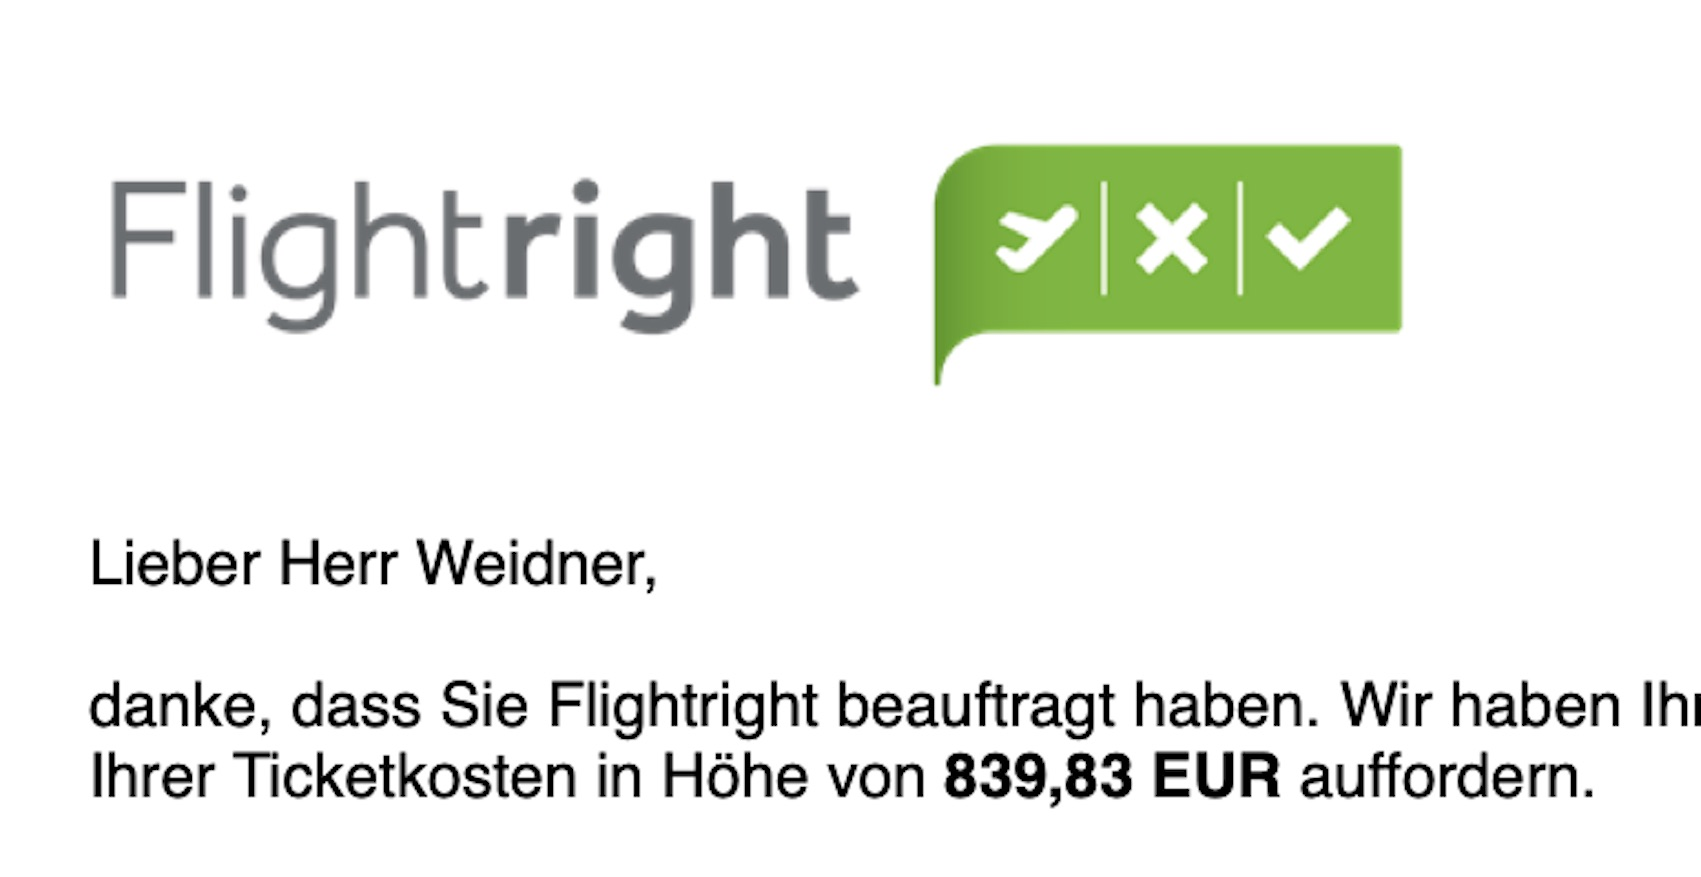 Flightright beauftragt (Foto: SmartPhoneFan.de)